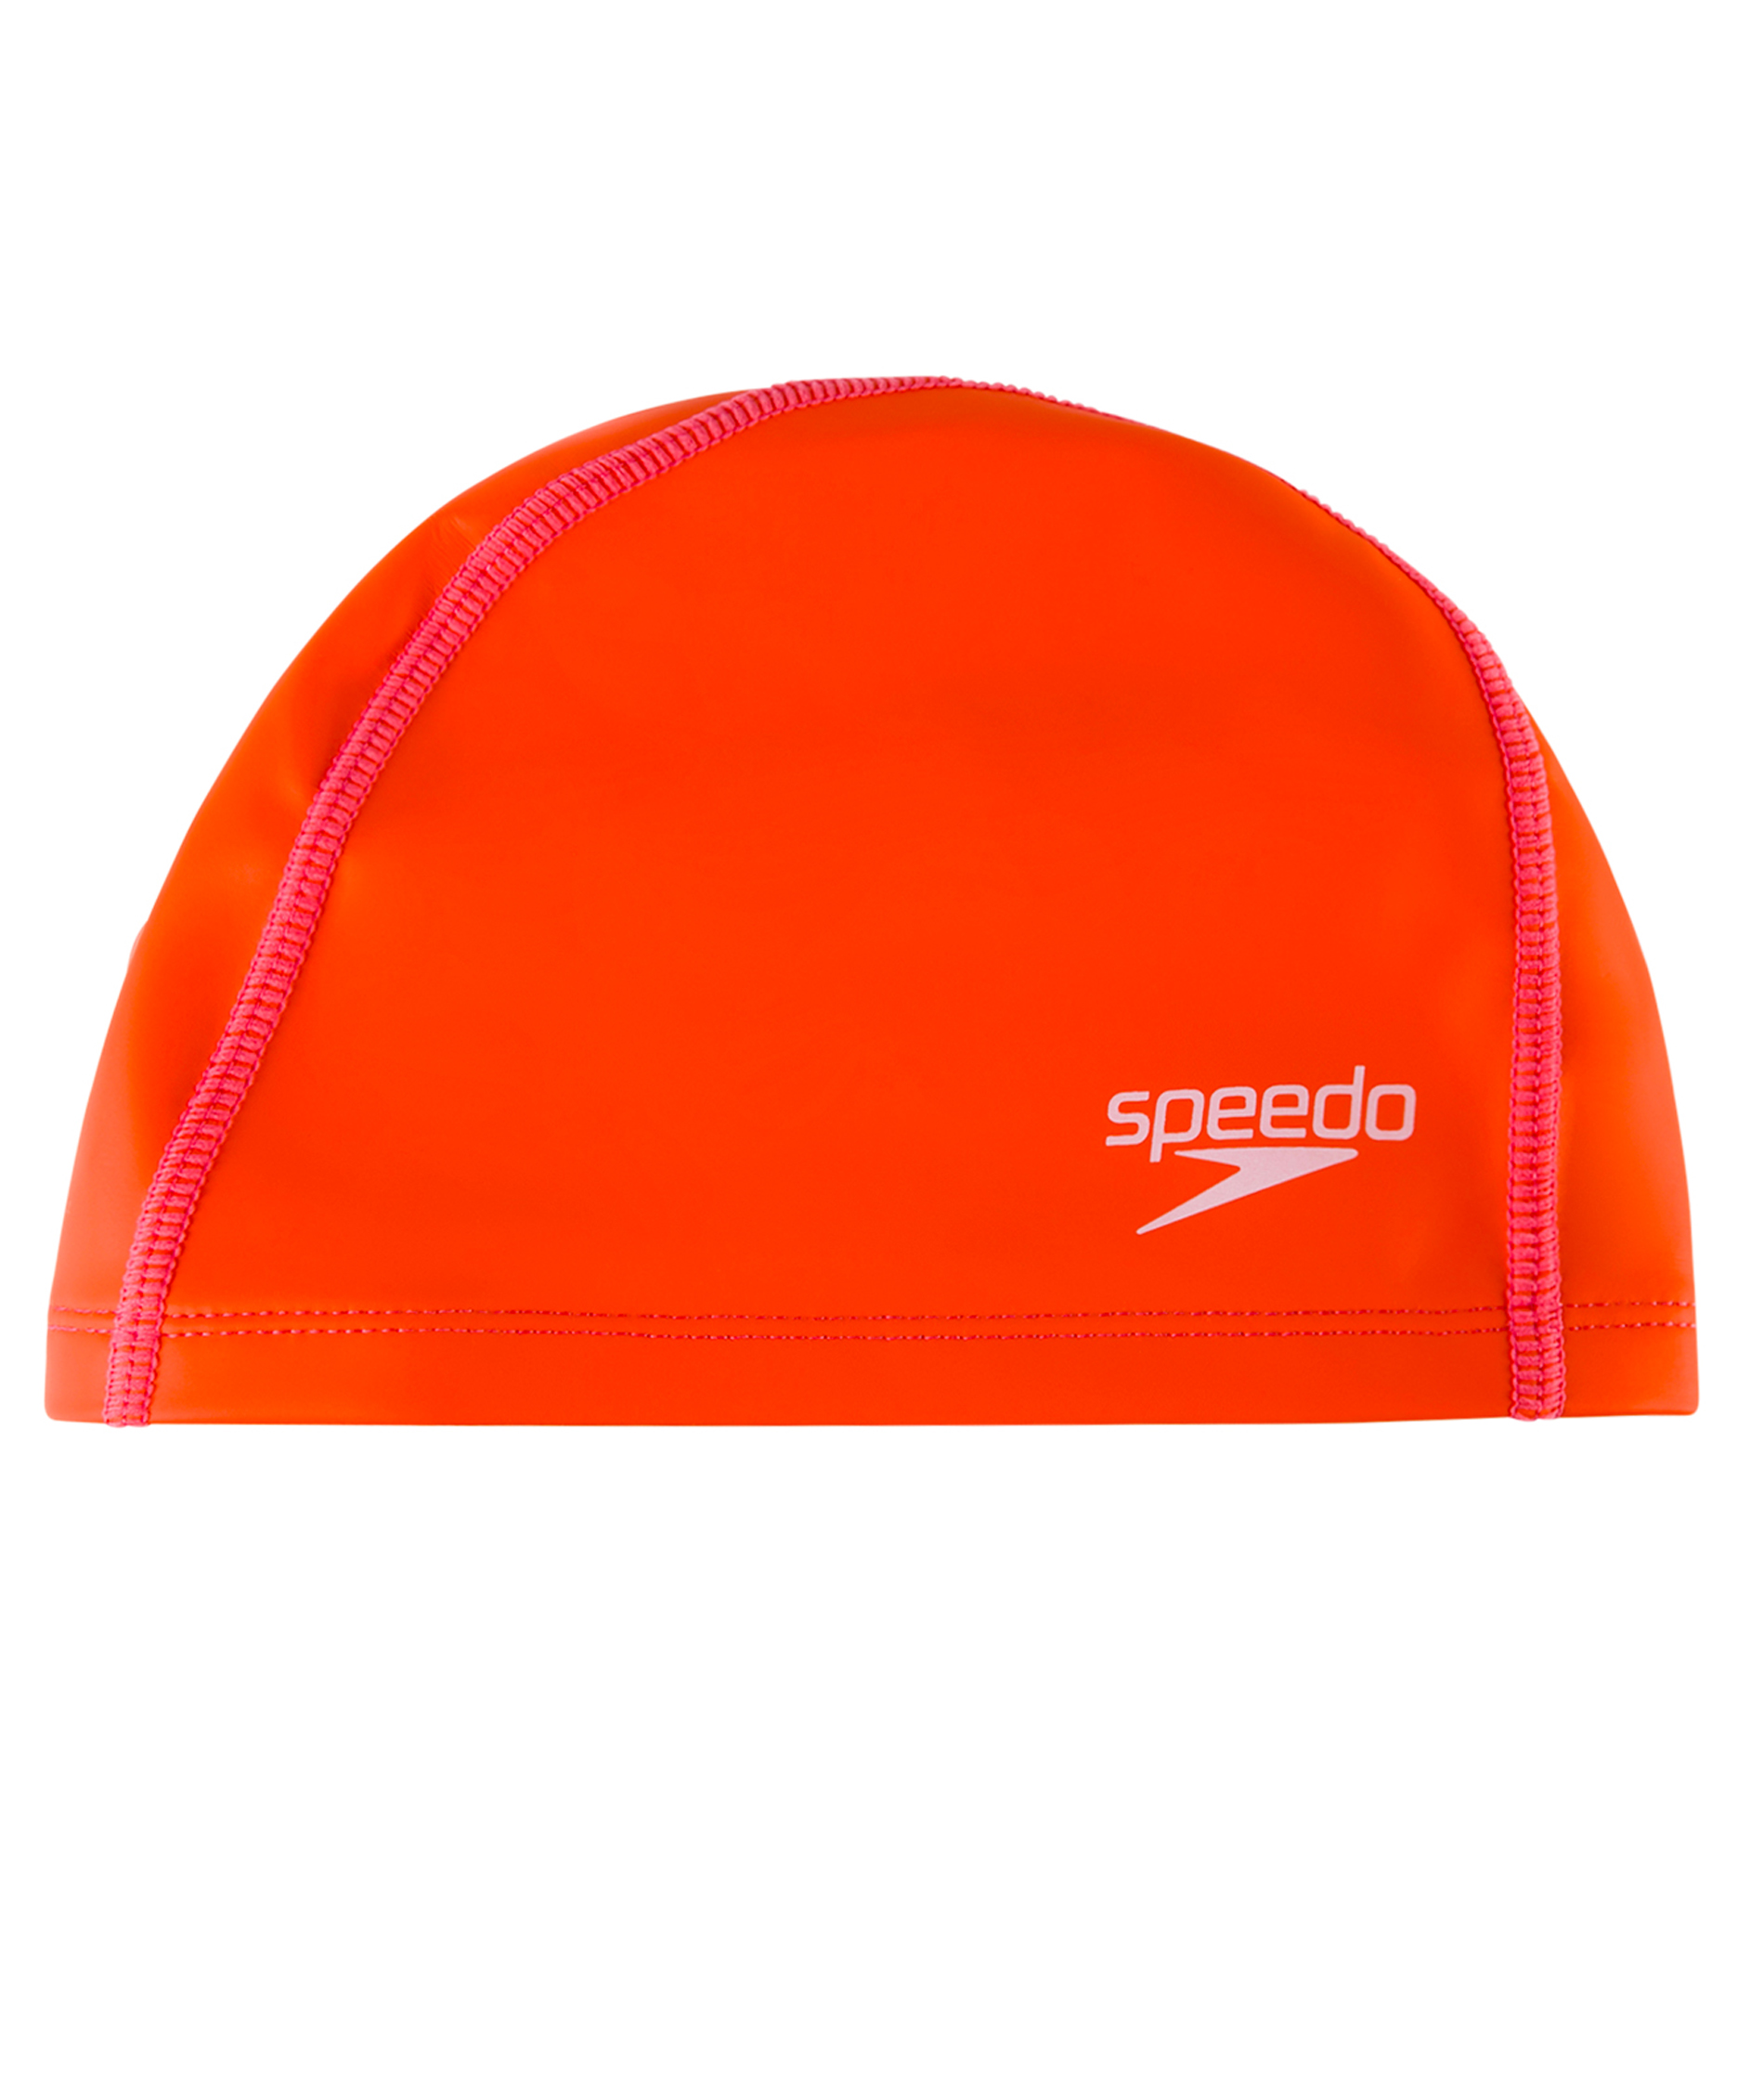 Speedo Junior Pace Cap - Orange